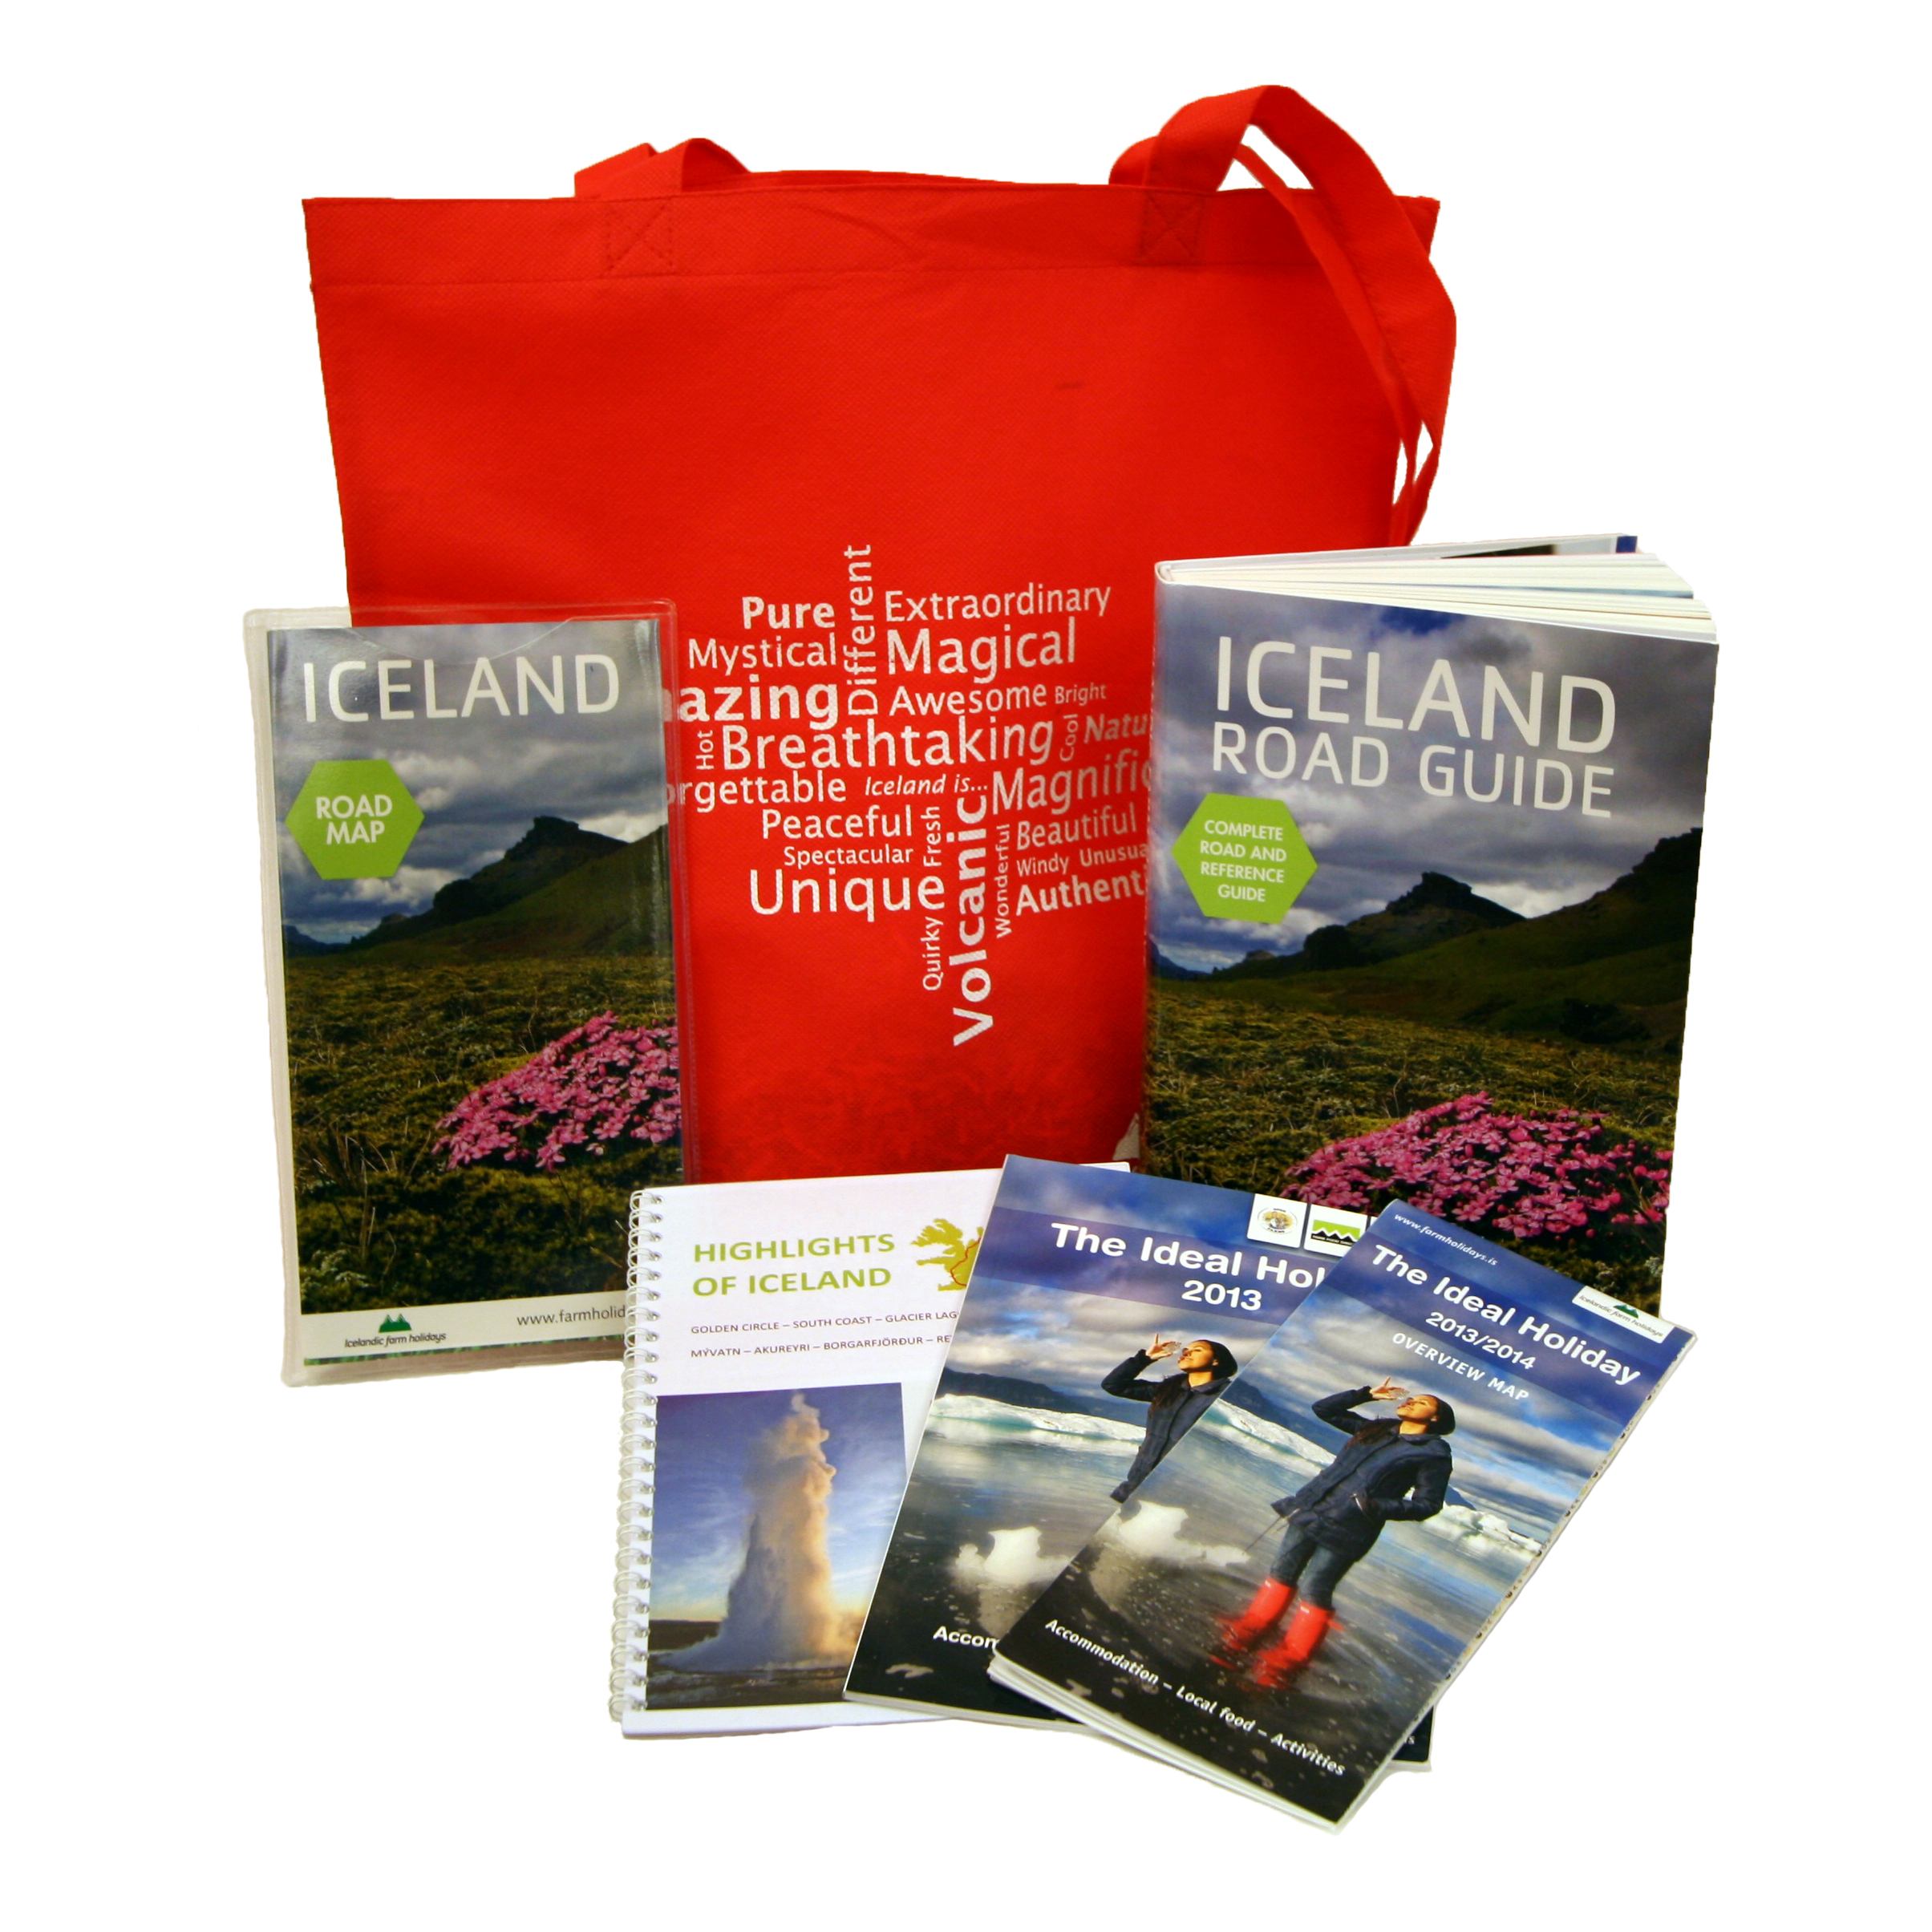 Travel documents with self-drive tour in Iceland